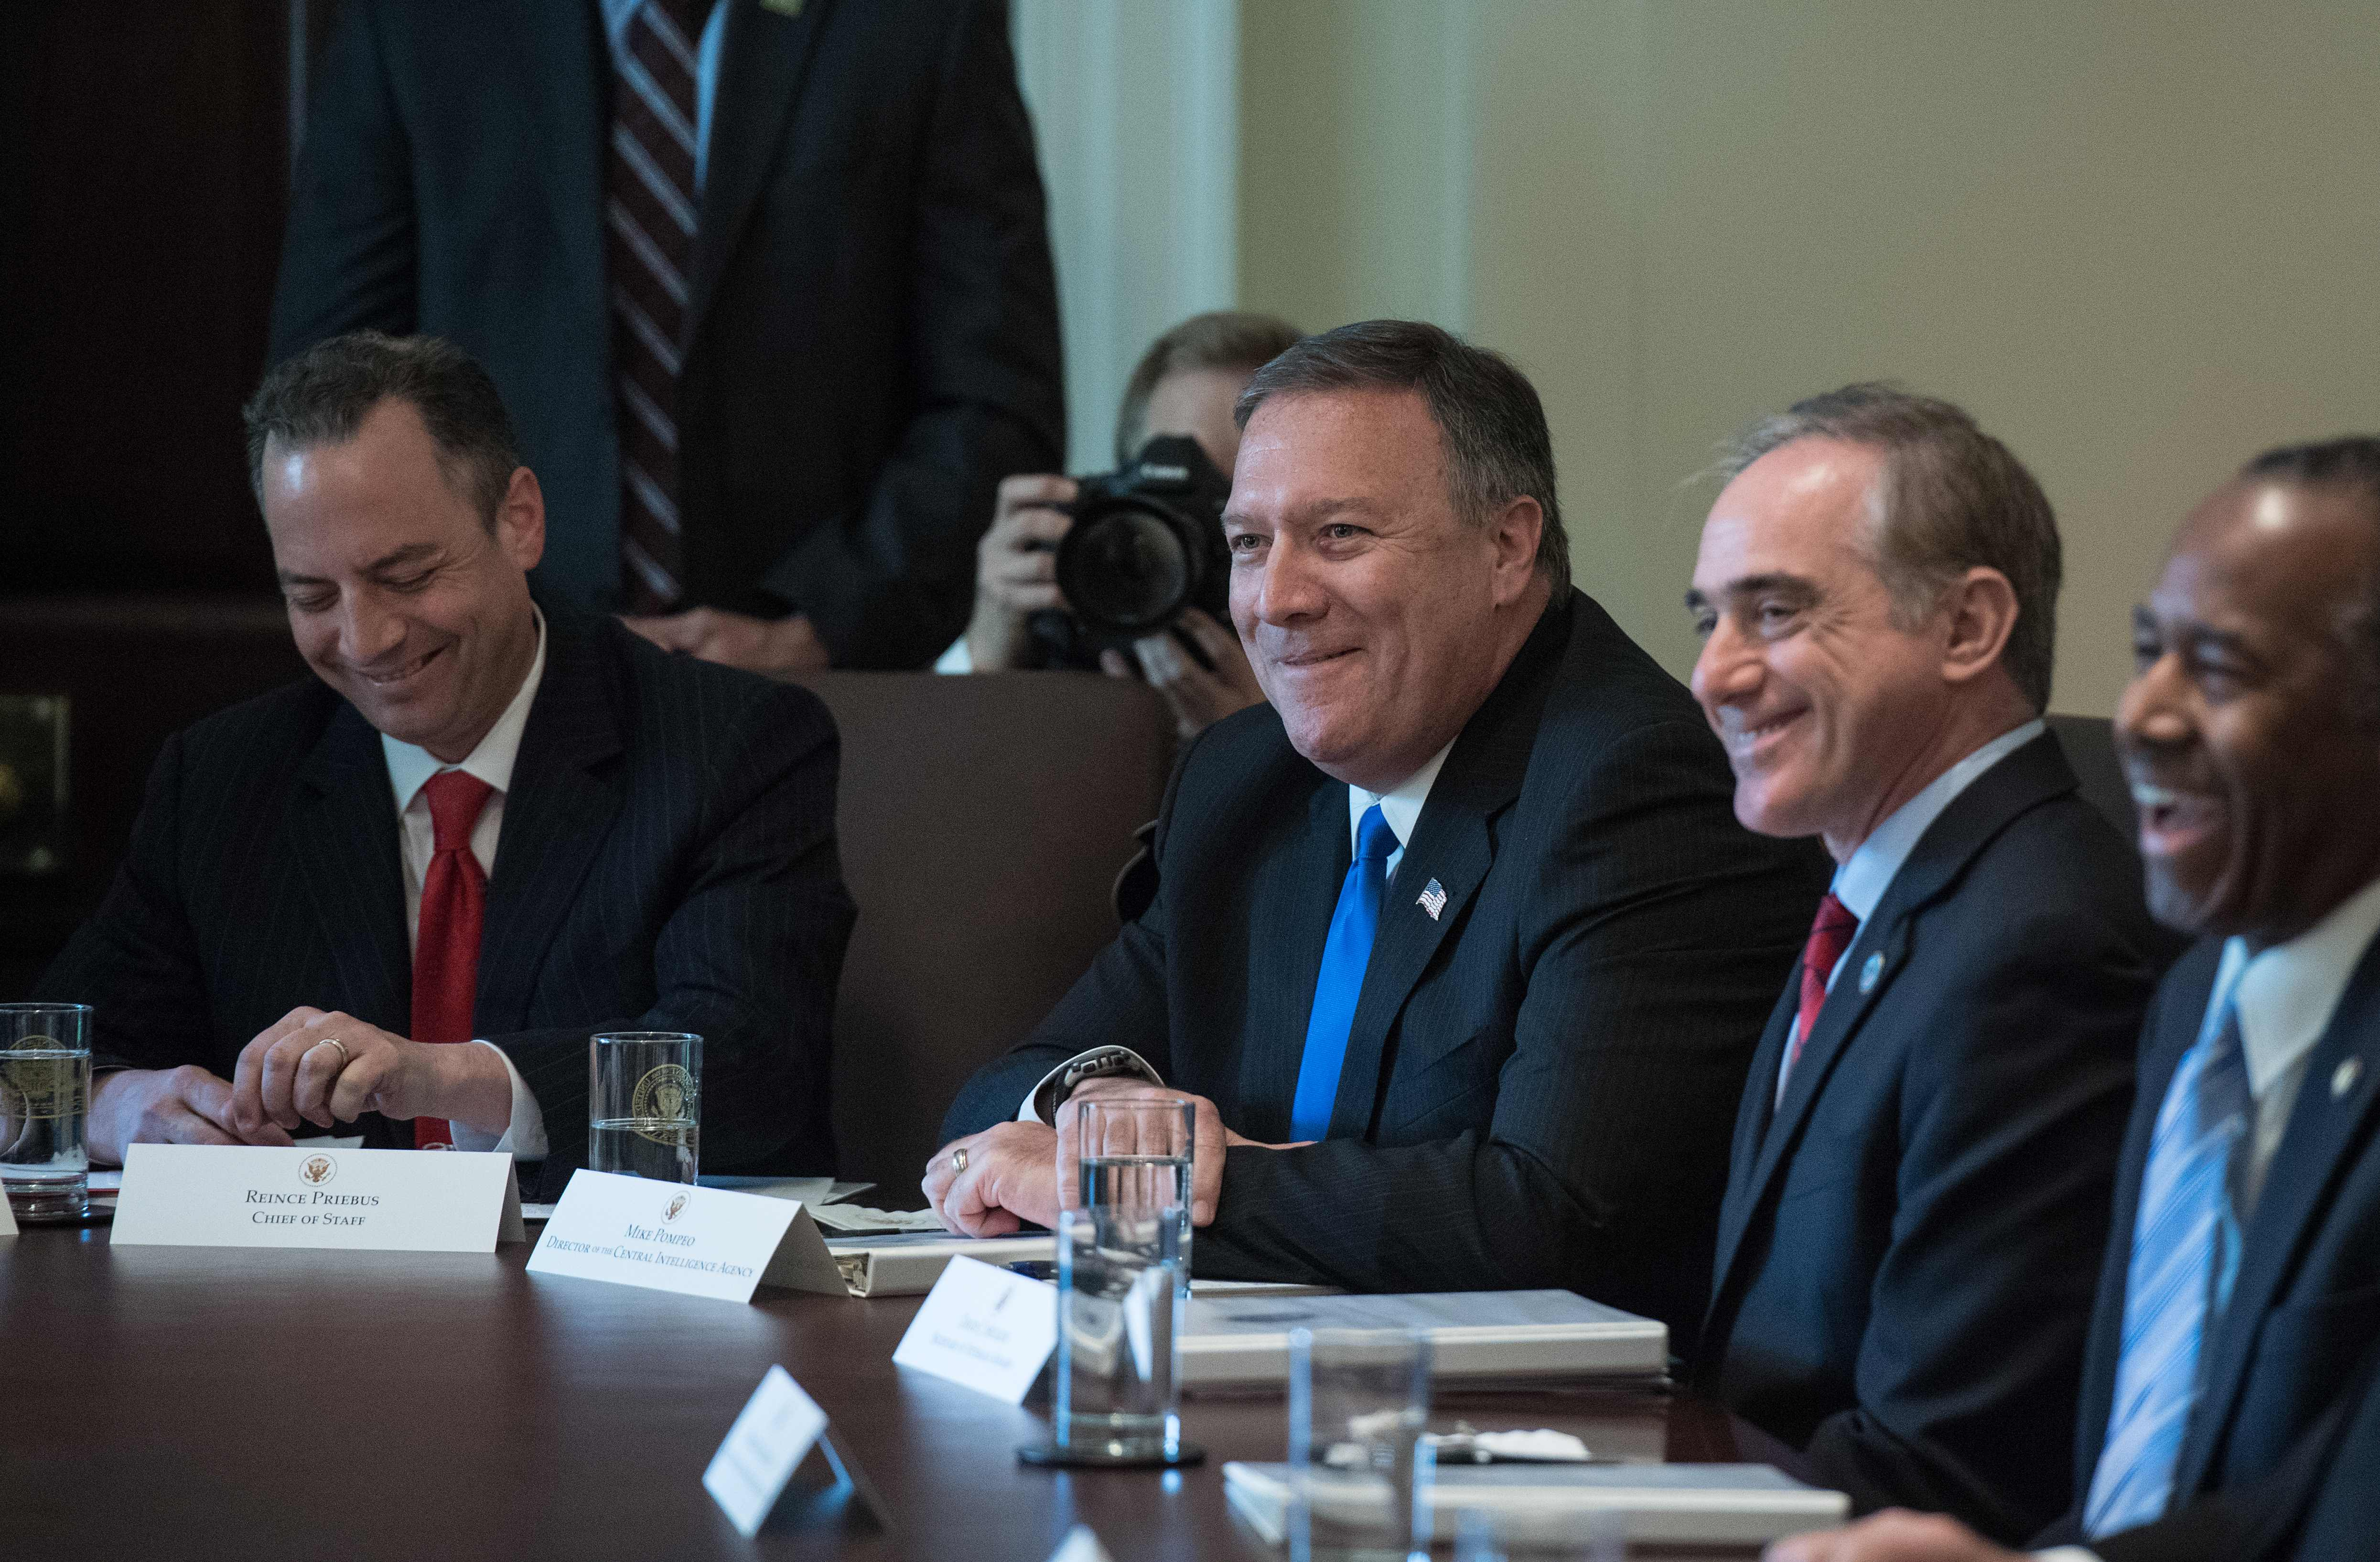 (L-R) White House Chief of Staff Reince Priebus, CIA Director Mike Pompeo, Veran Affairs Secretary David Shulkin and Housing and Urban Development Secretary Ben Carson laugh during a cabinet meeting at the White House in Washington, DC, on June 12, 2017.